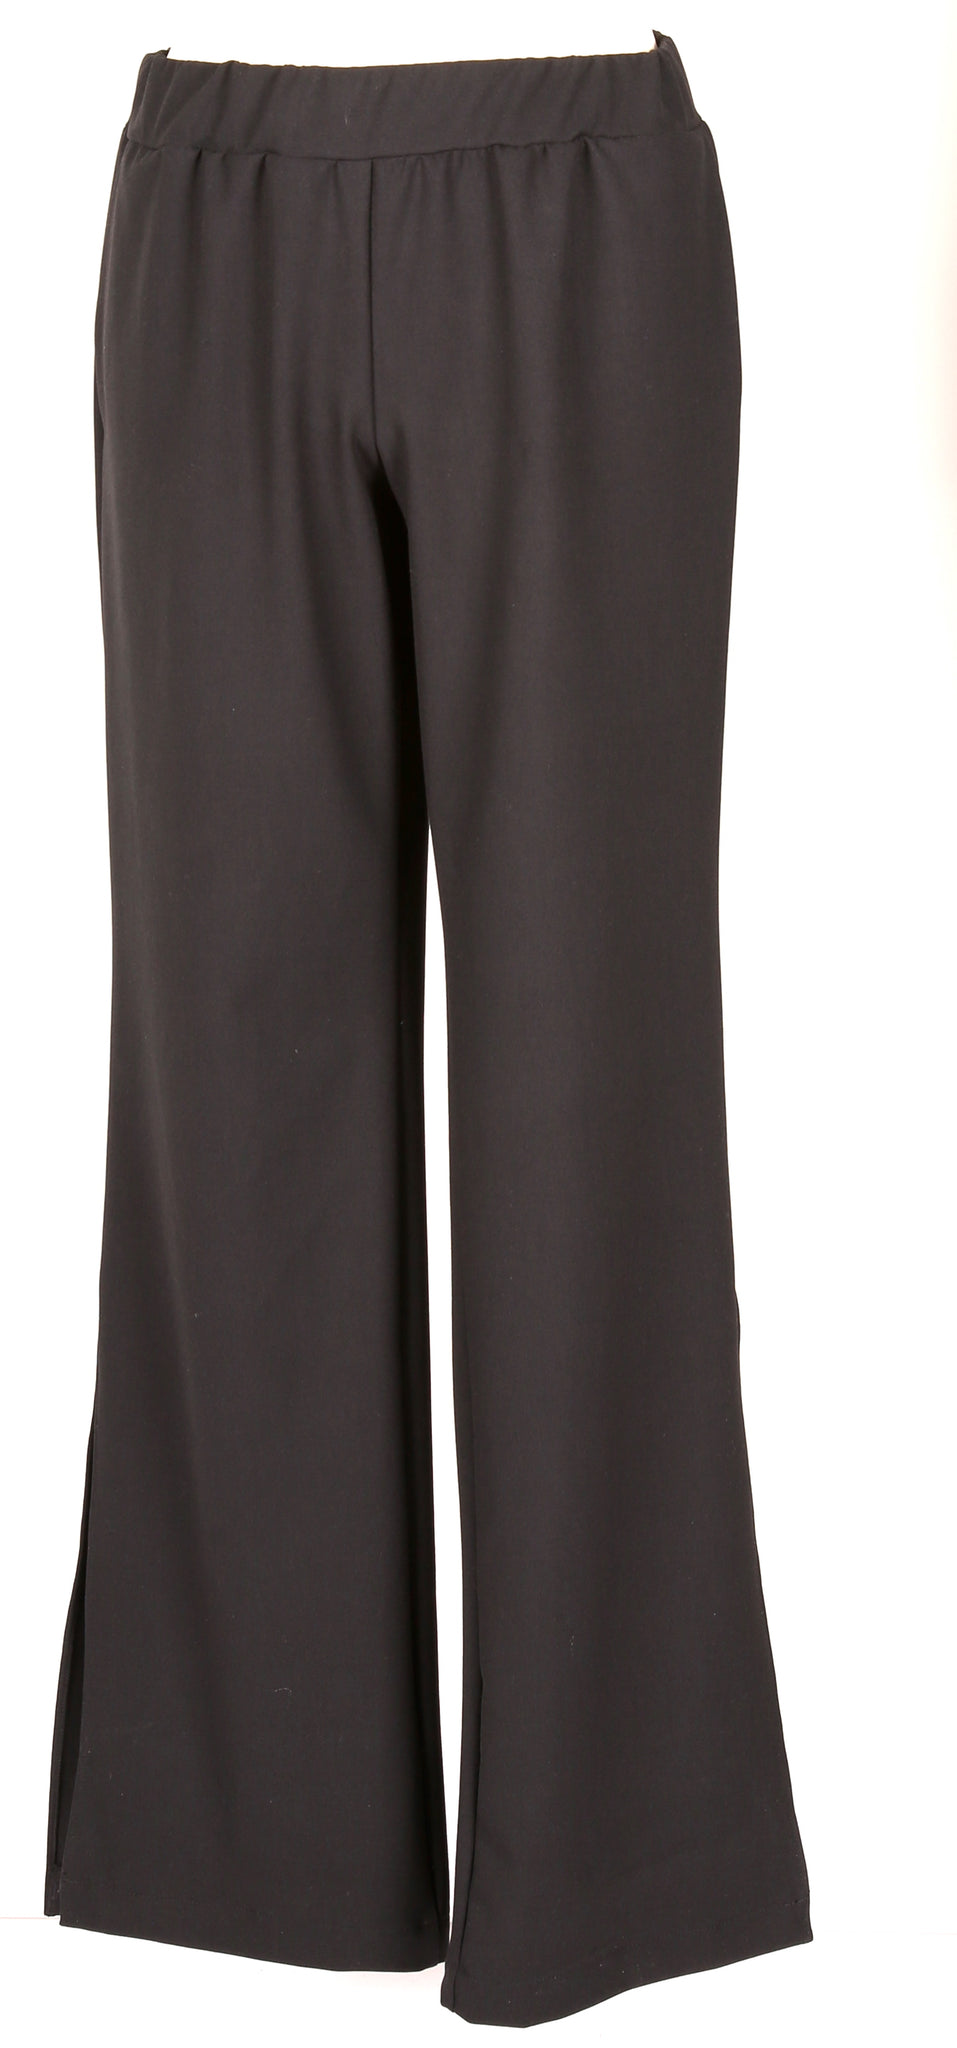 Black  trousers with splits